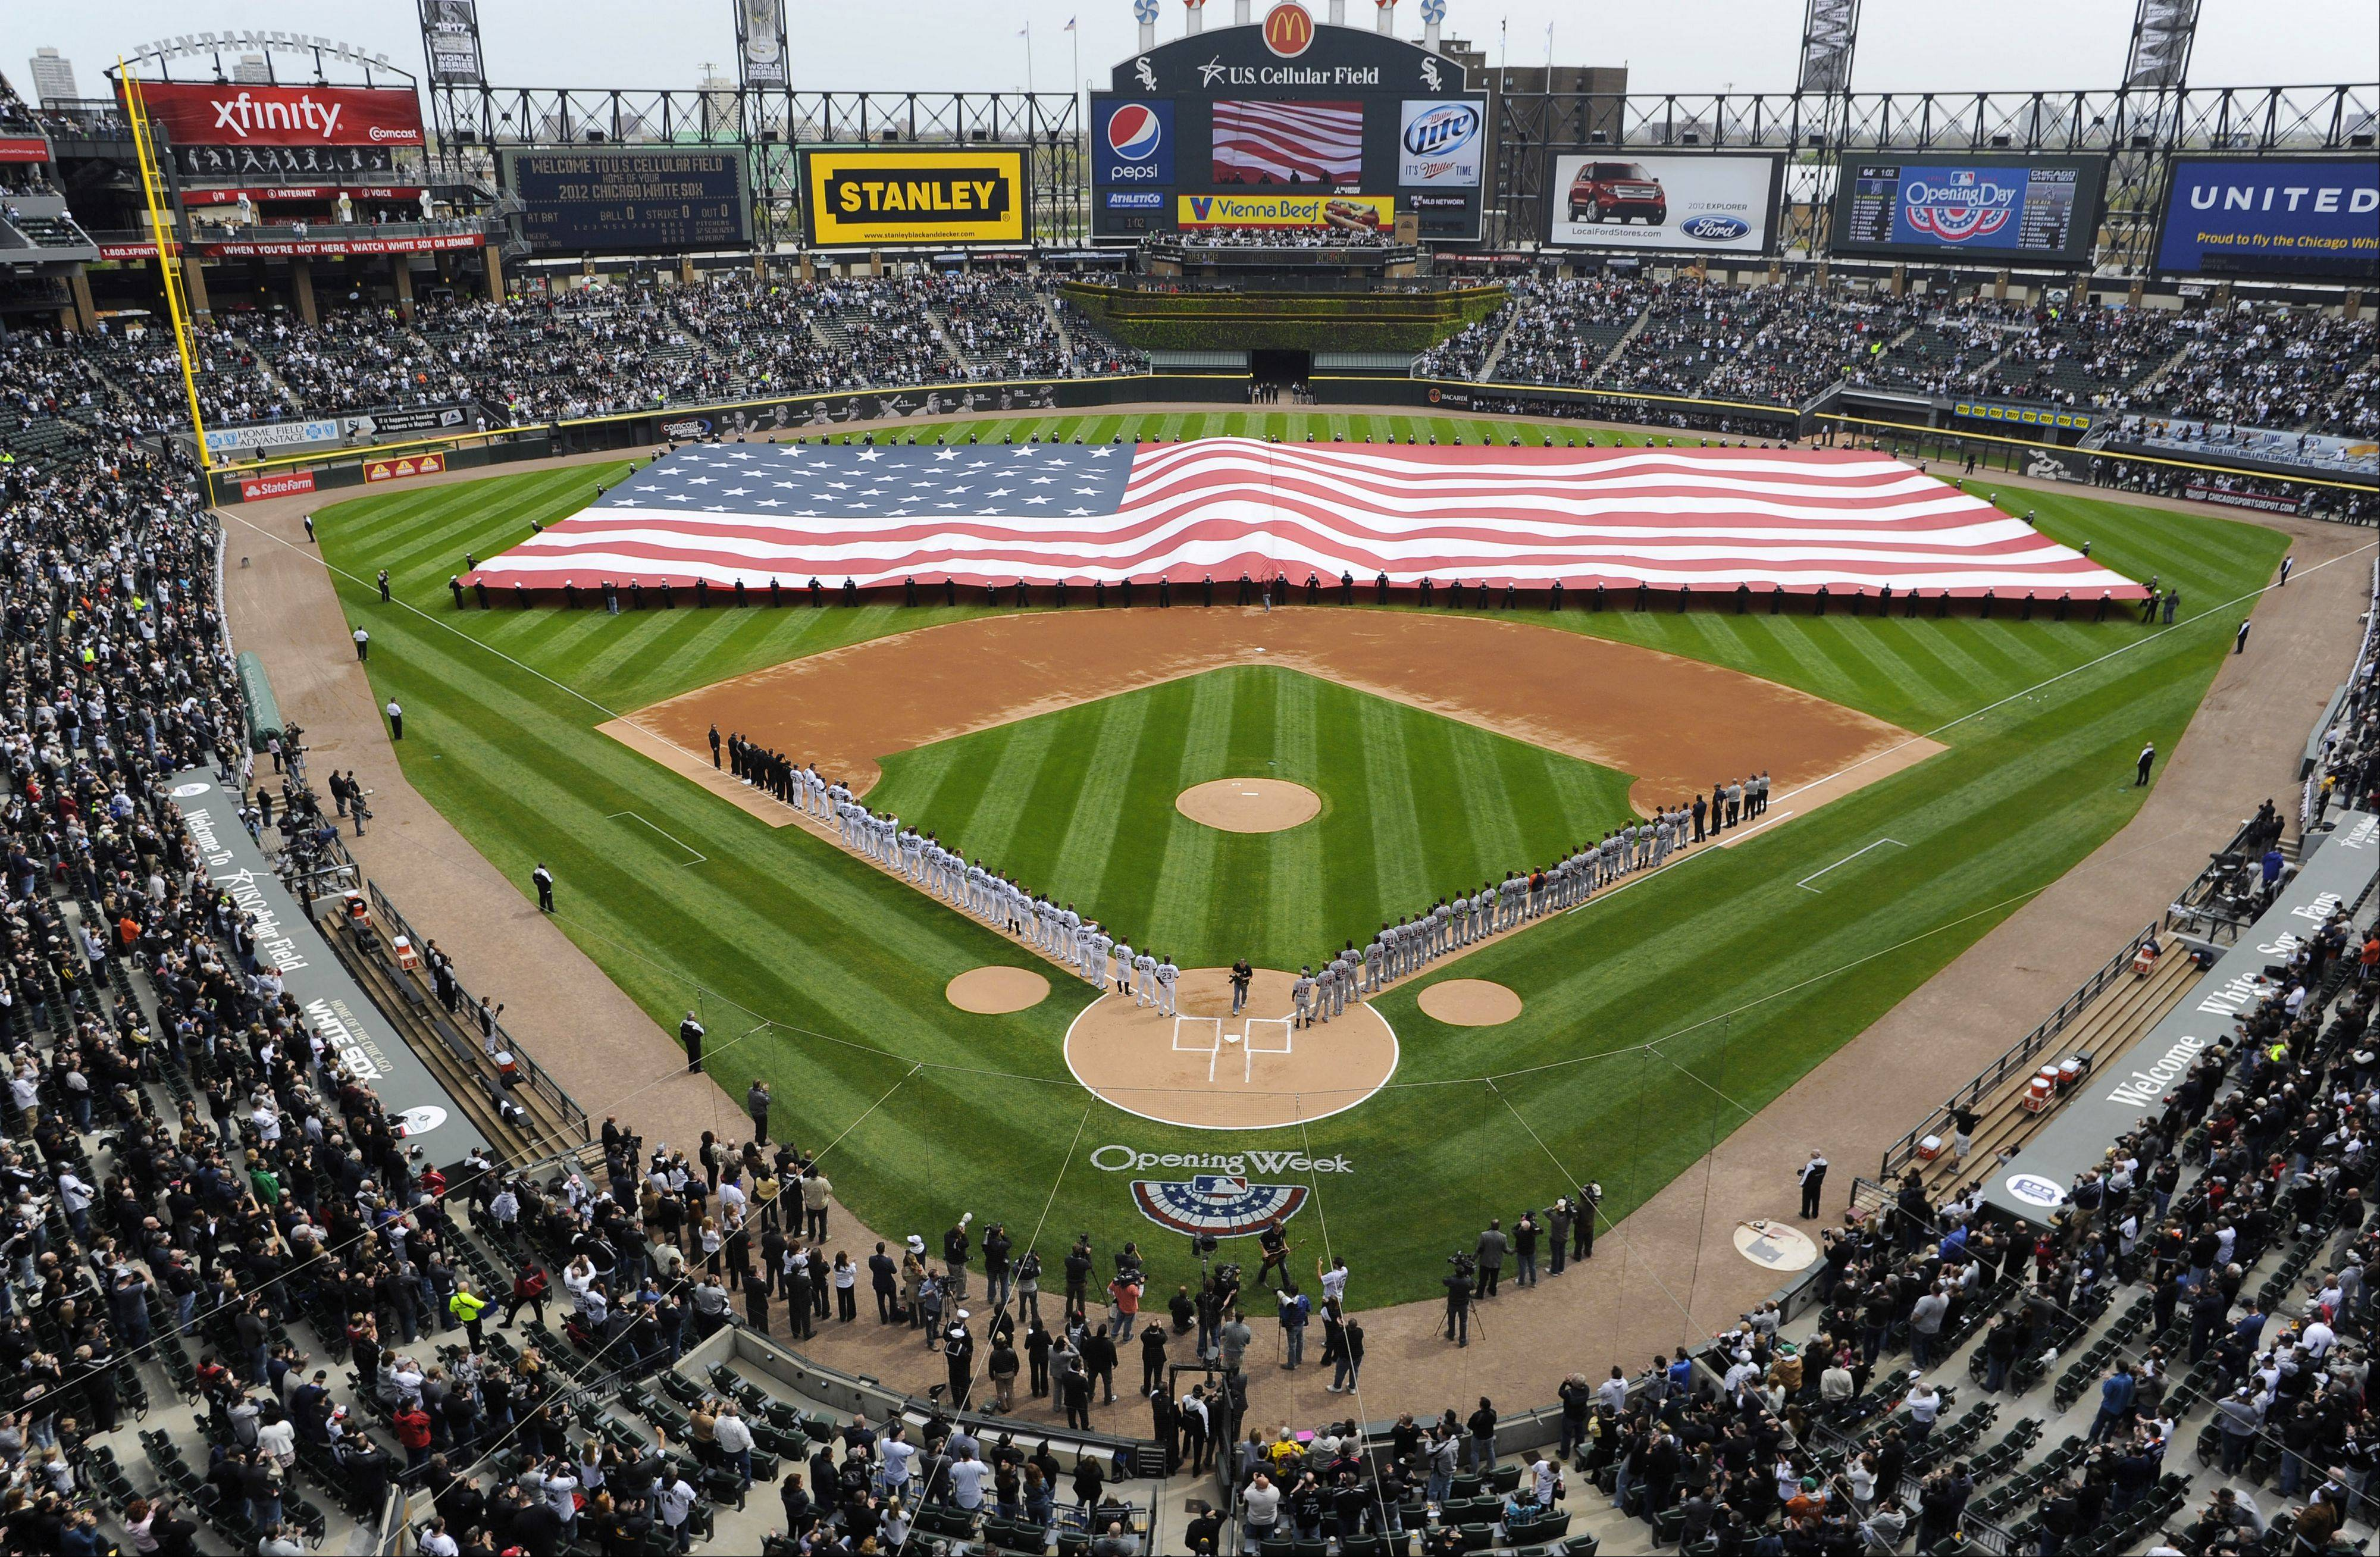 White Sox opening day against the Tigers.